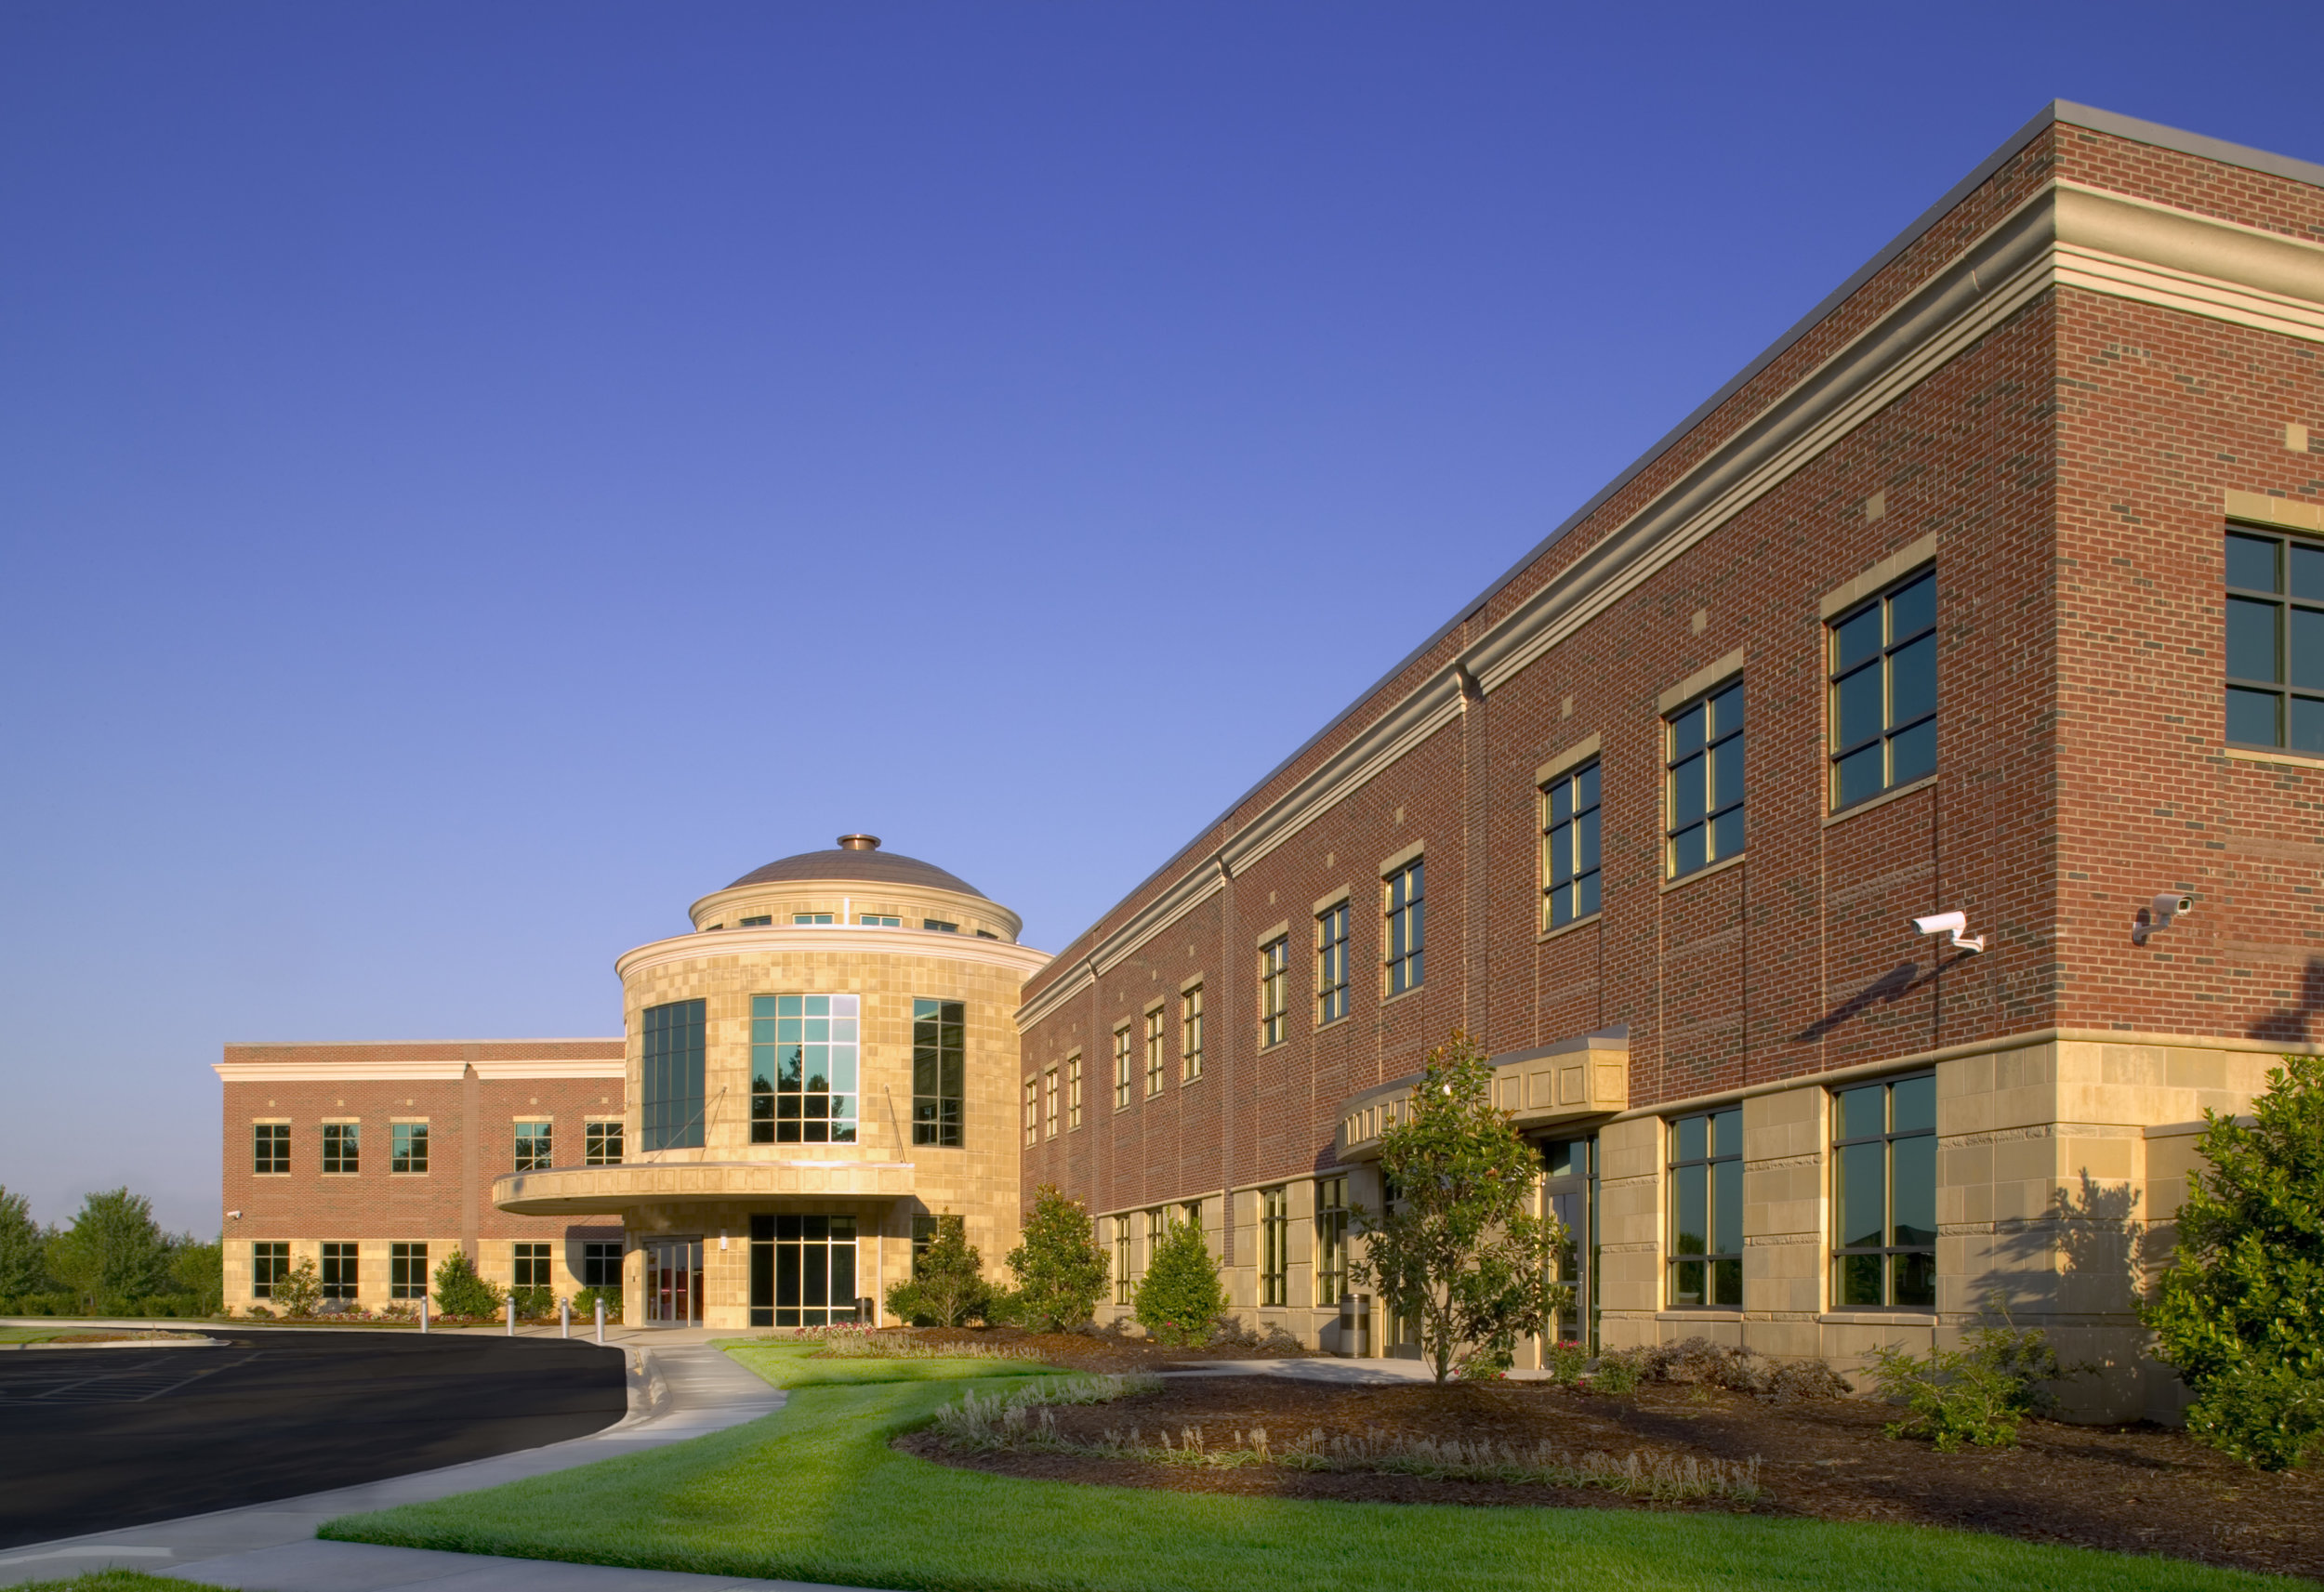 ADW-Office+Mixed-Use-Rosedale-Medical-Office-Huntersville-NC-1.jpg